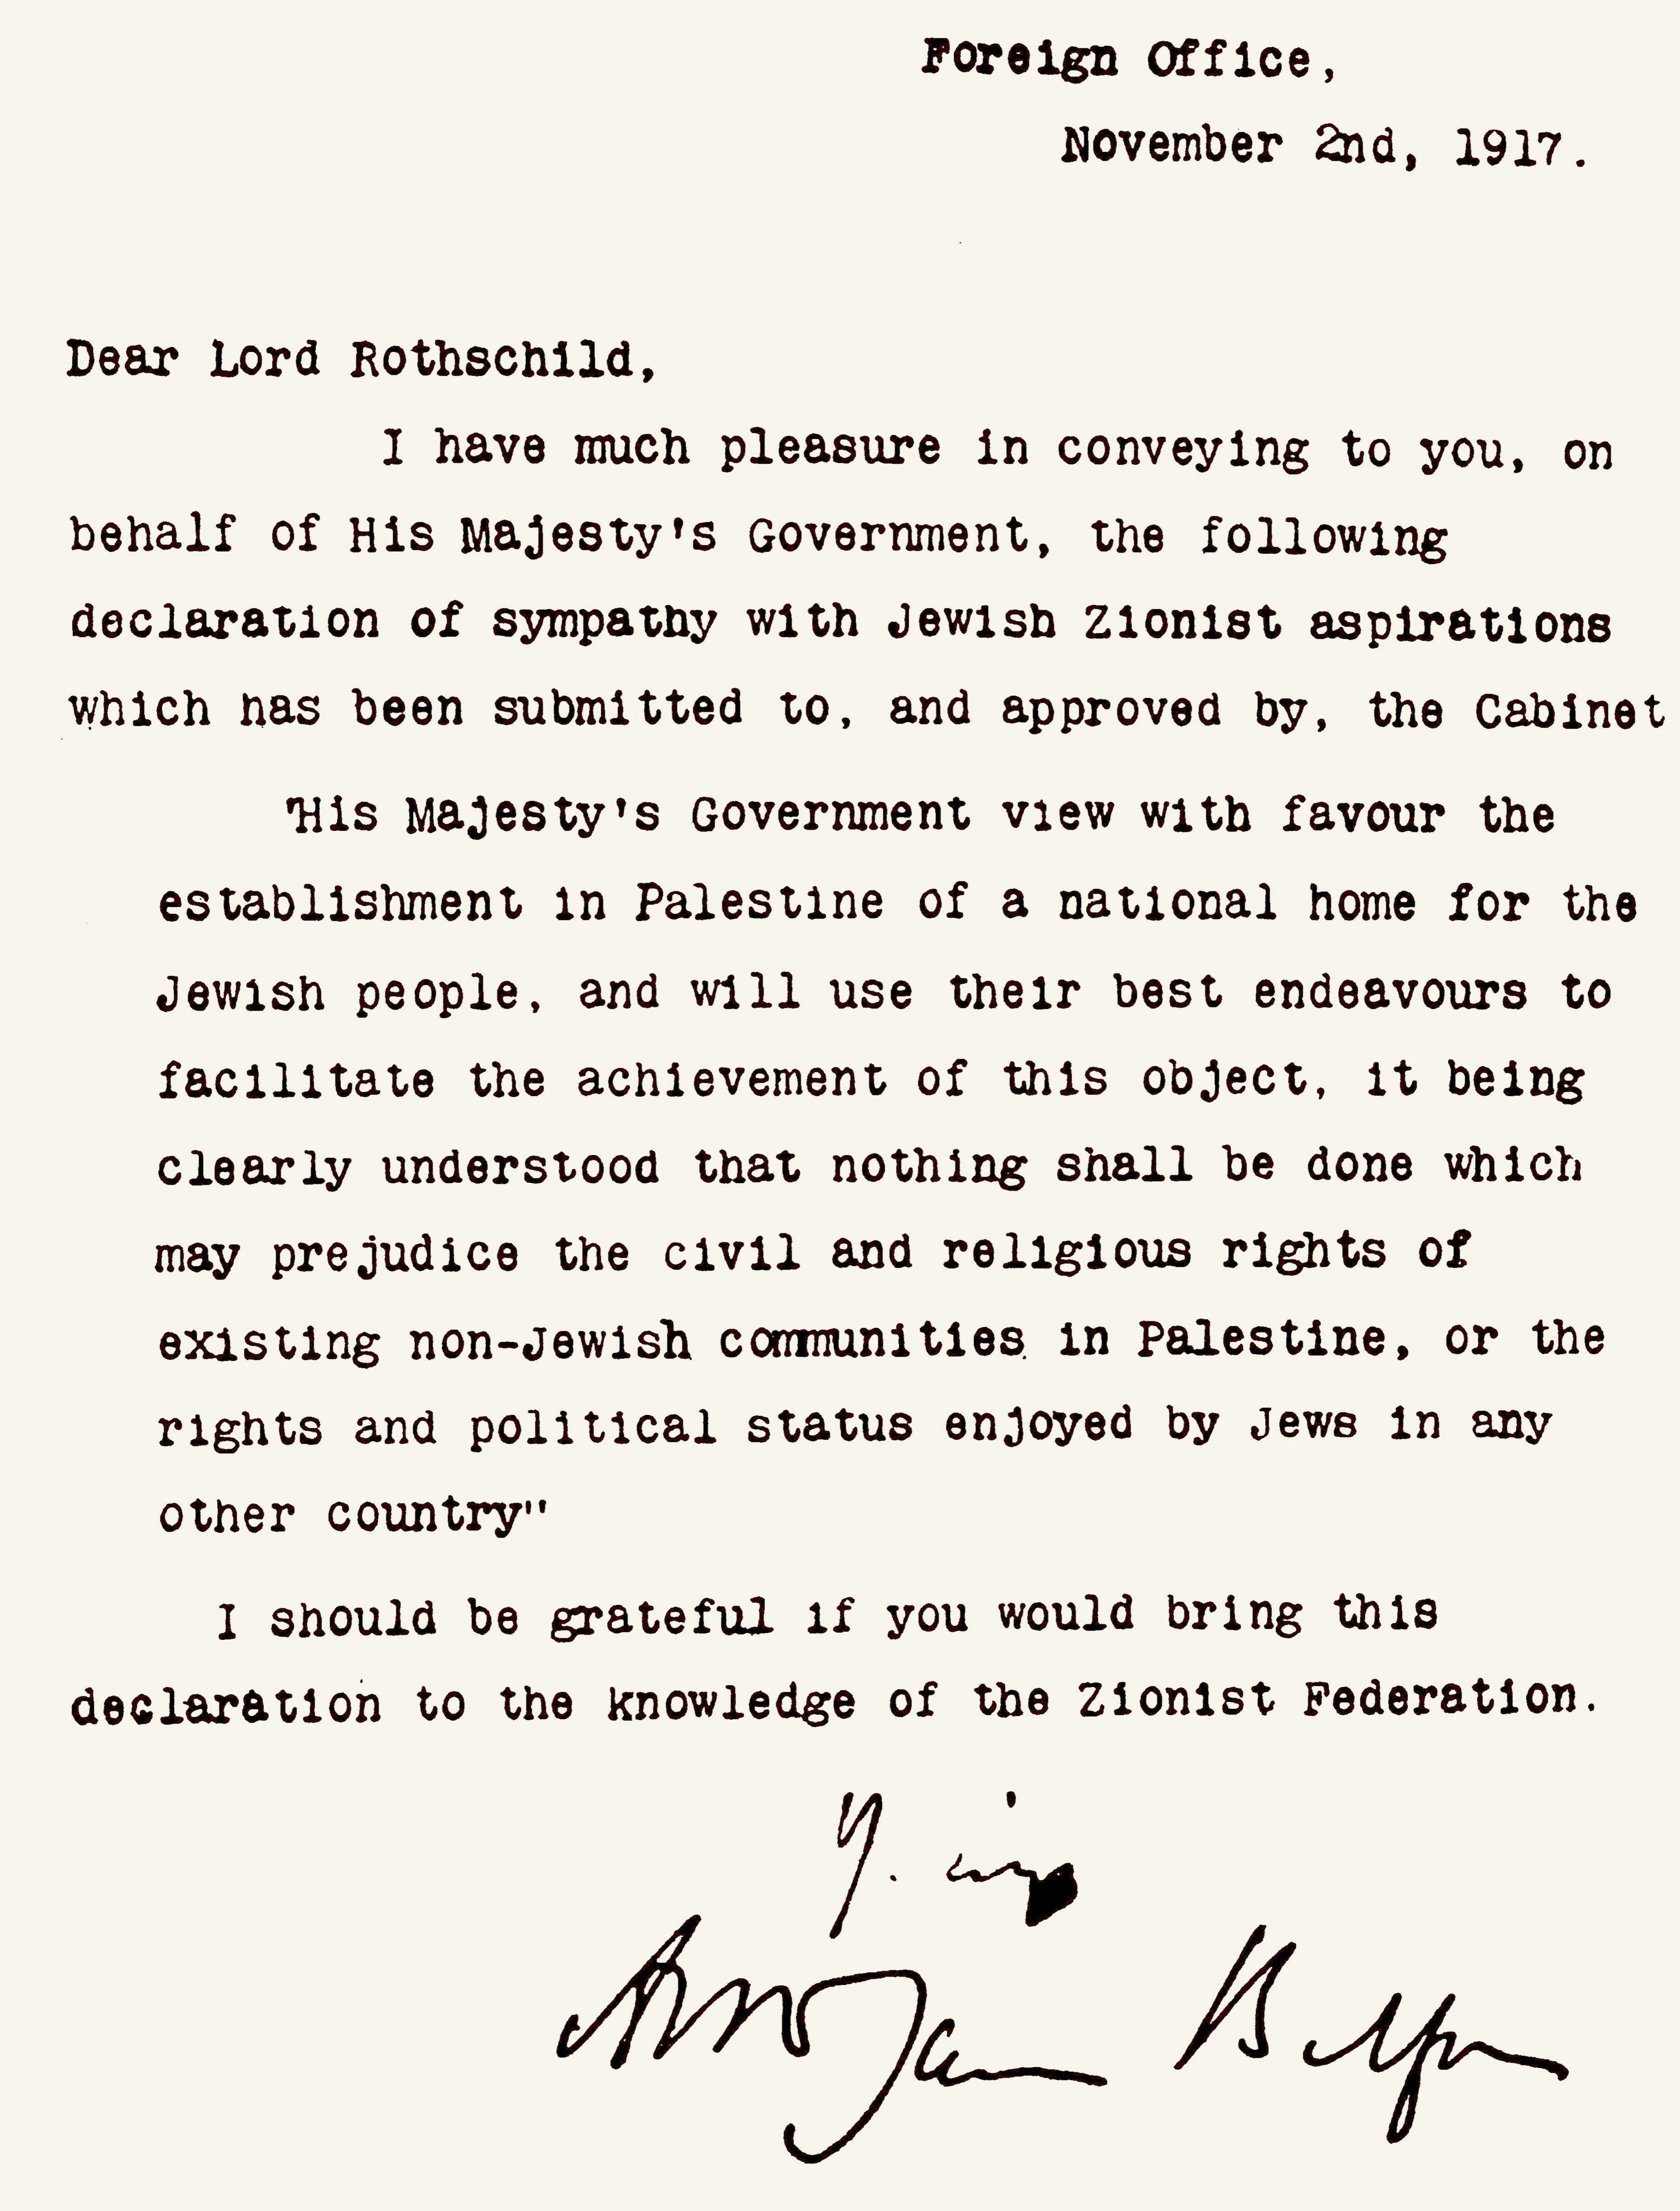 The Balfour Declaration, a letter from the United Kingdom's Foreign Secretary Arthur James Balfour. Dated 1917. (Photo by Universal History Archive/UIG via Getty Images)